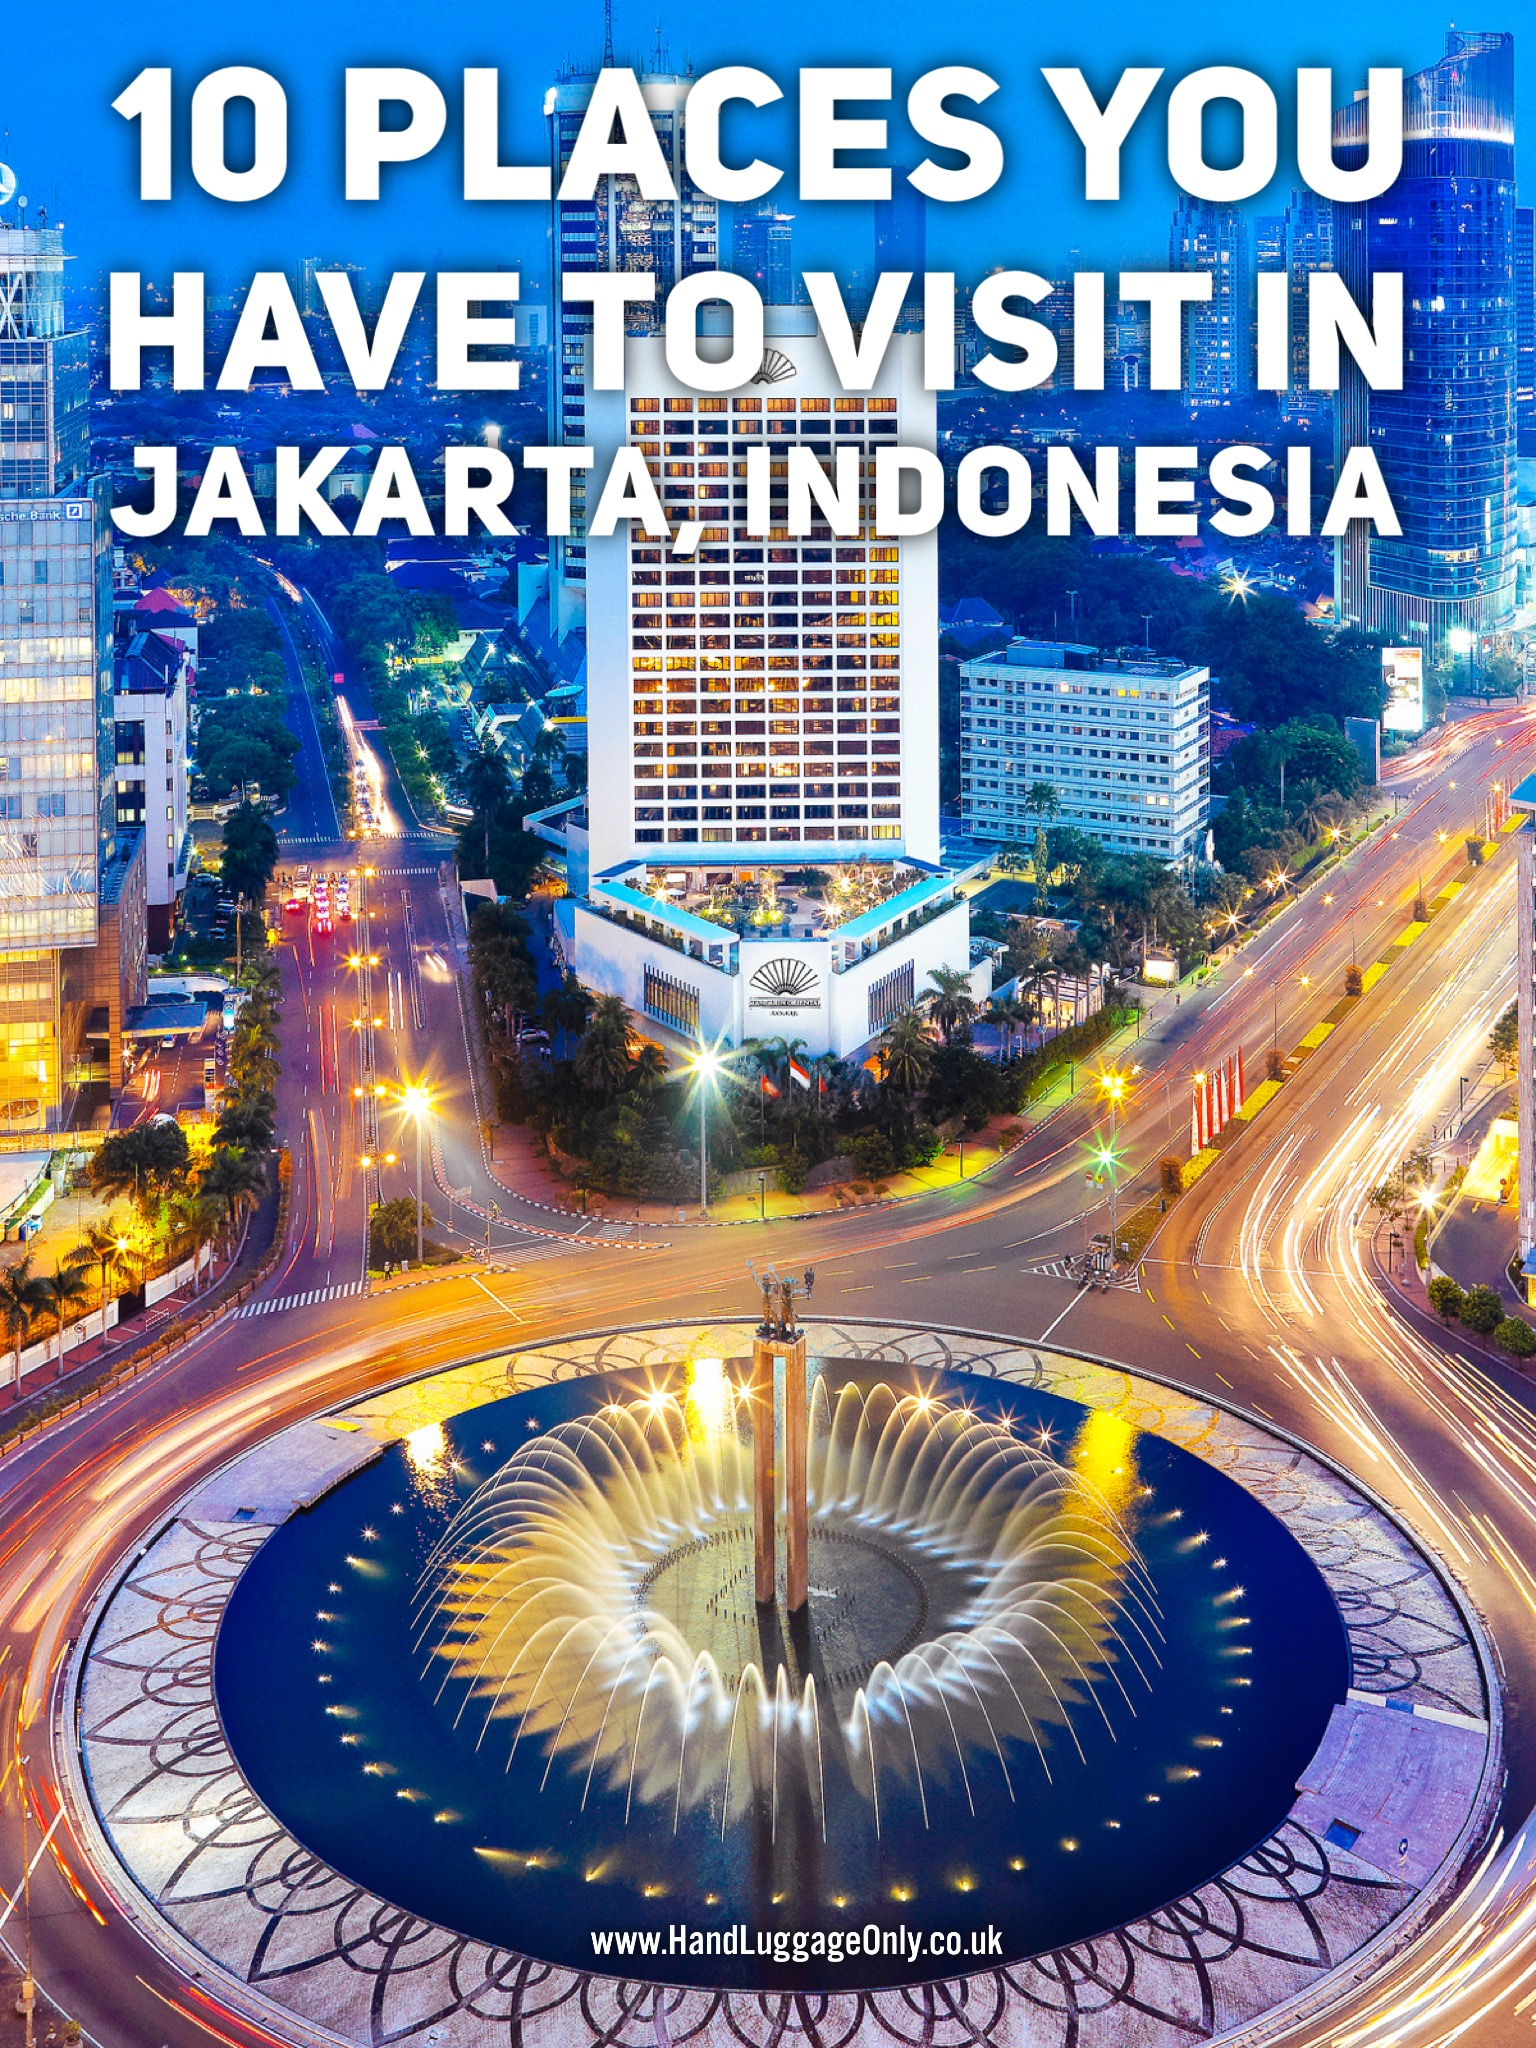 10 Places You Have To Visit In Jakarta, Indonesia (1)